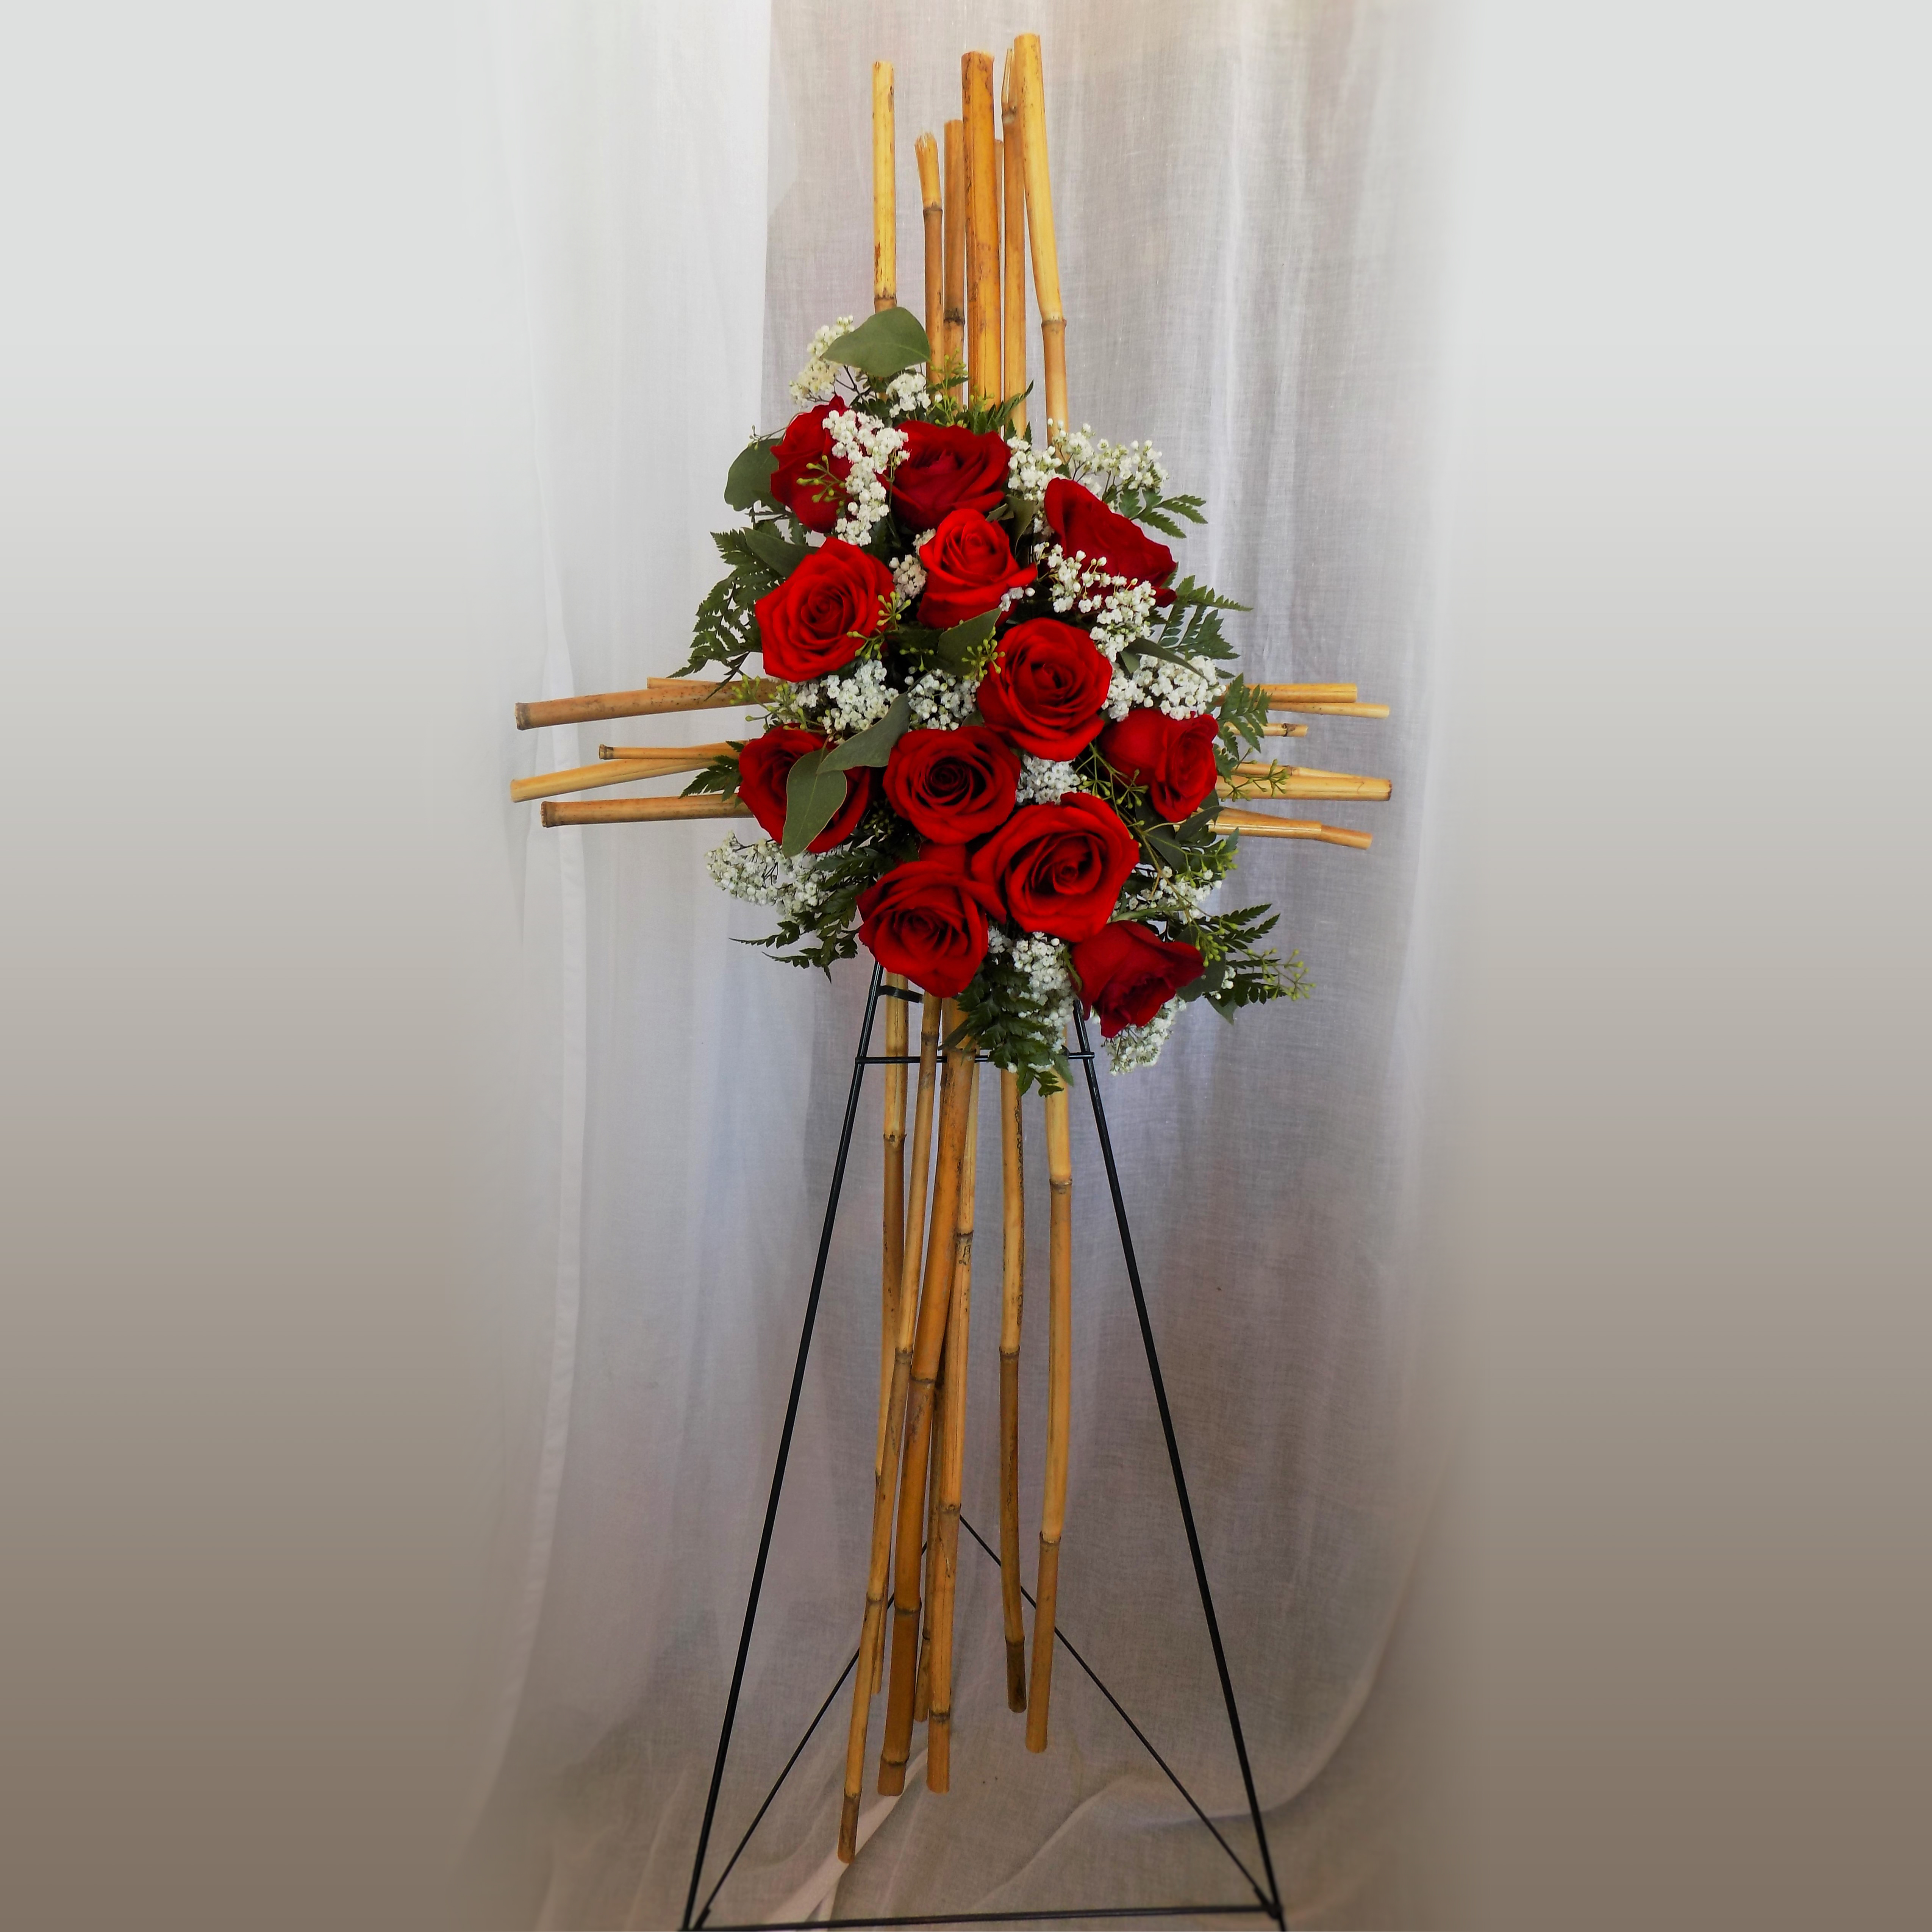 Bamboo Cross Werner Harmsen Funeral Home Of Waupun Wi